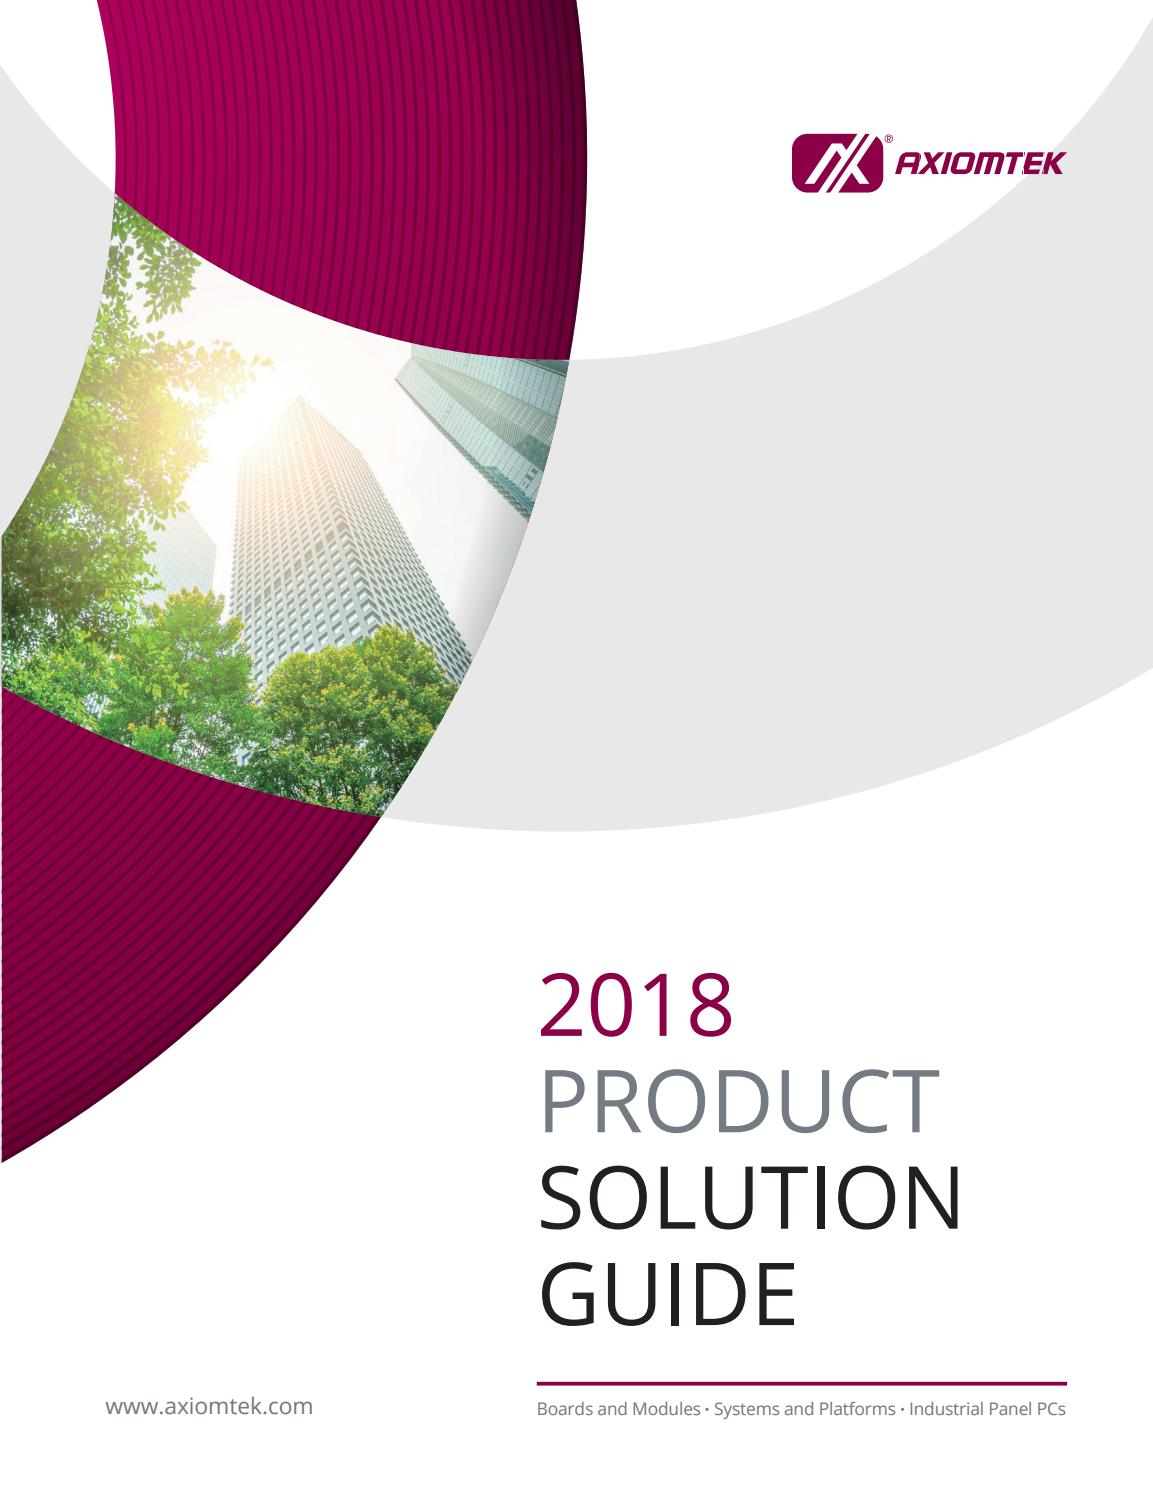 2018 Product Solution Guide By Axiomtek Issuu Quickswitch Highspeed Cmos